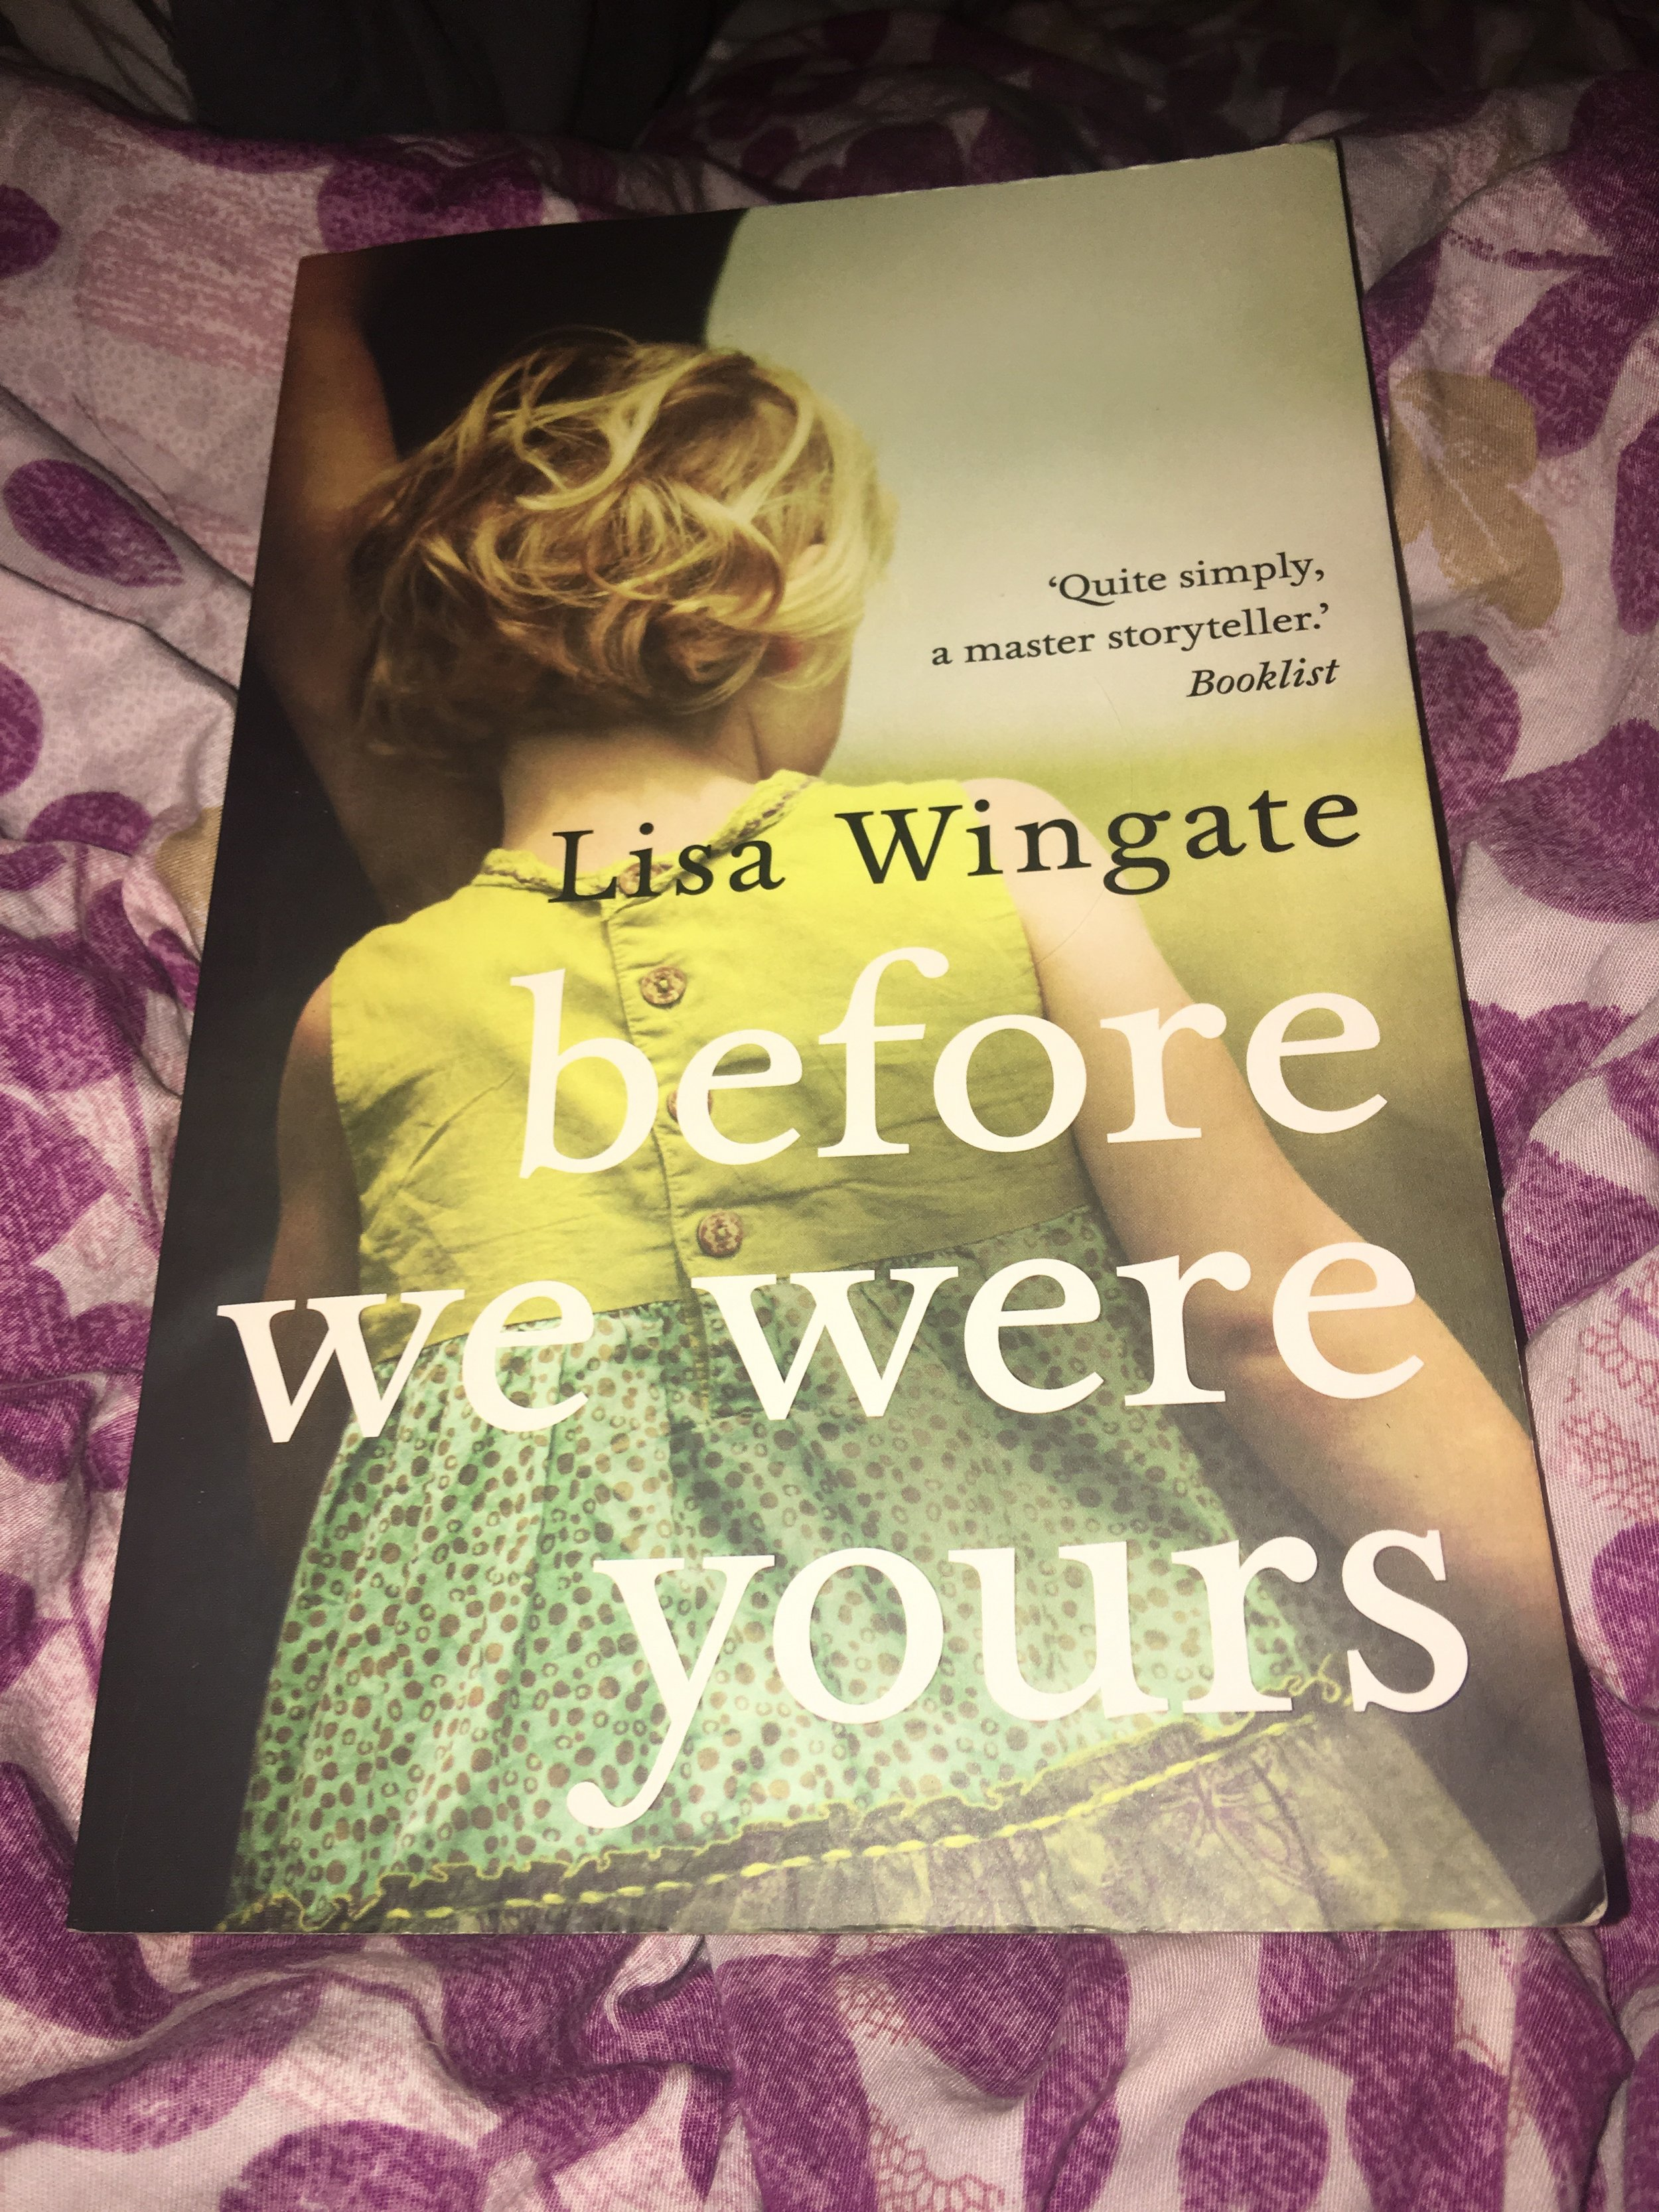 Before We Were Yours - By Lisa Wingate   StandaloneMy rating: 4 stars   Pages: 352What made me pick it up: Recommended by a friendFormat: Physical   Source: Borrowed from a Friend2018 challenge/s: Goodreads Reading Challenge